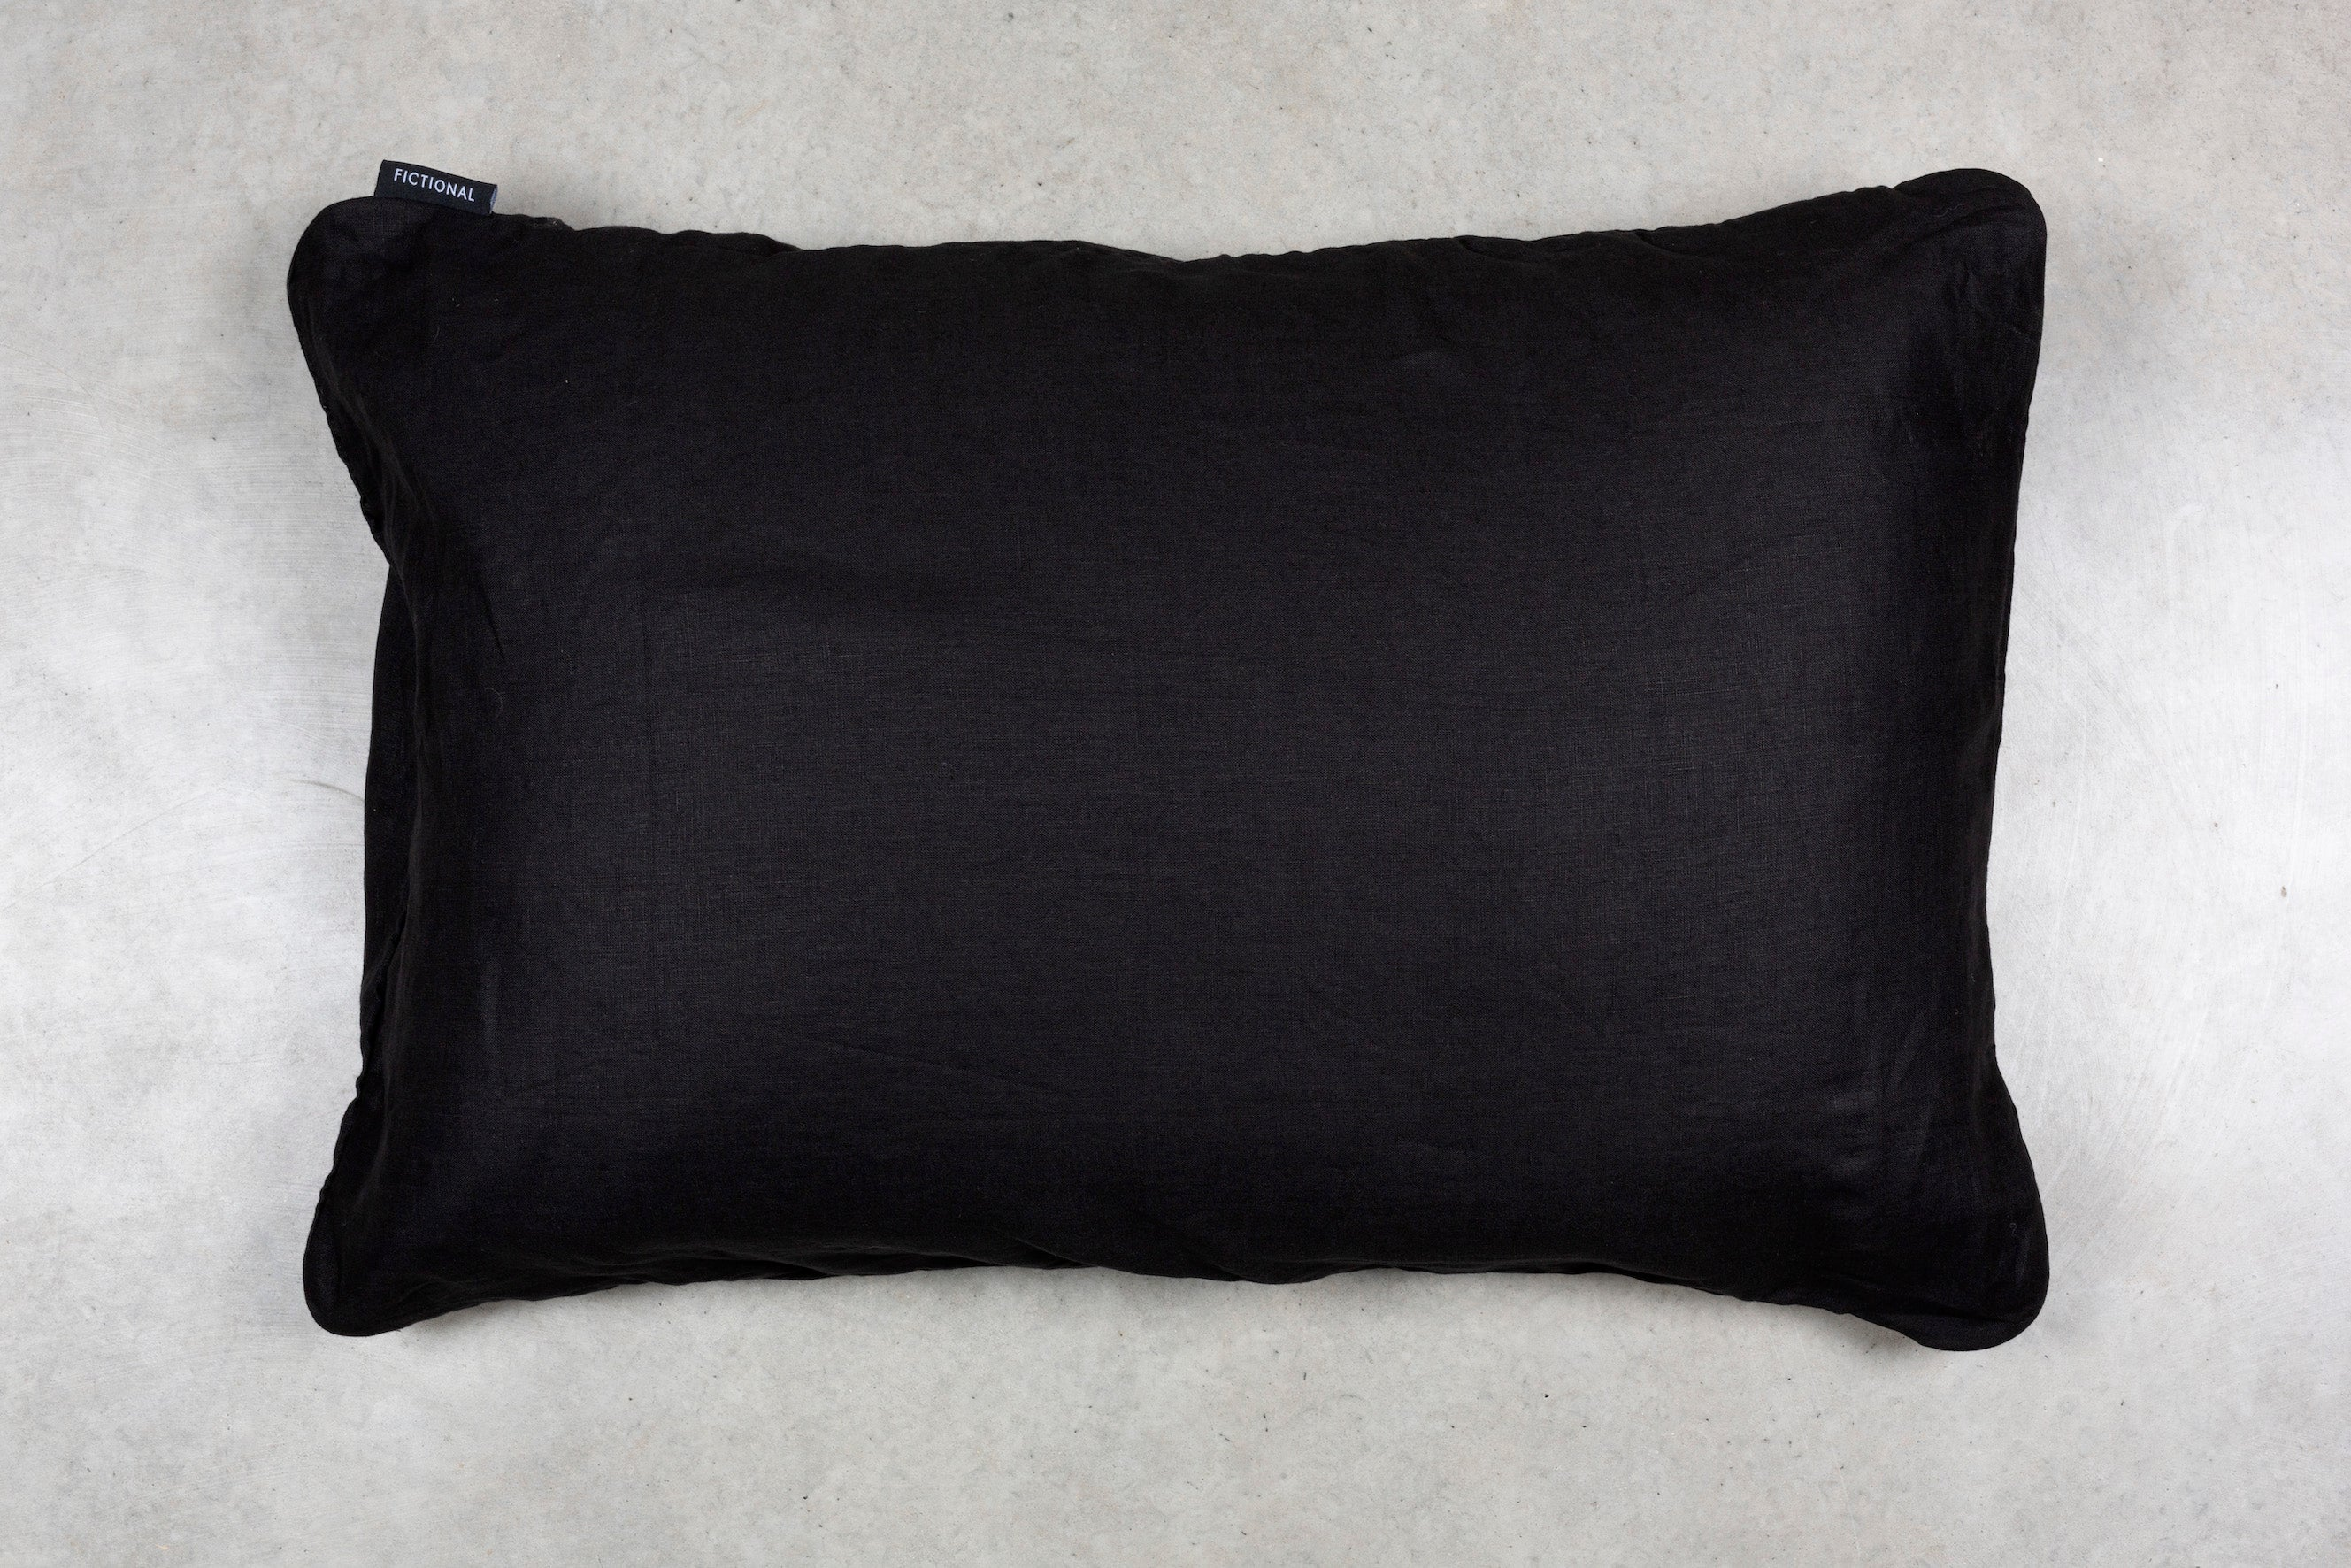 Black Linen - Single Standard Pillowcase